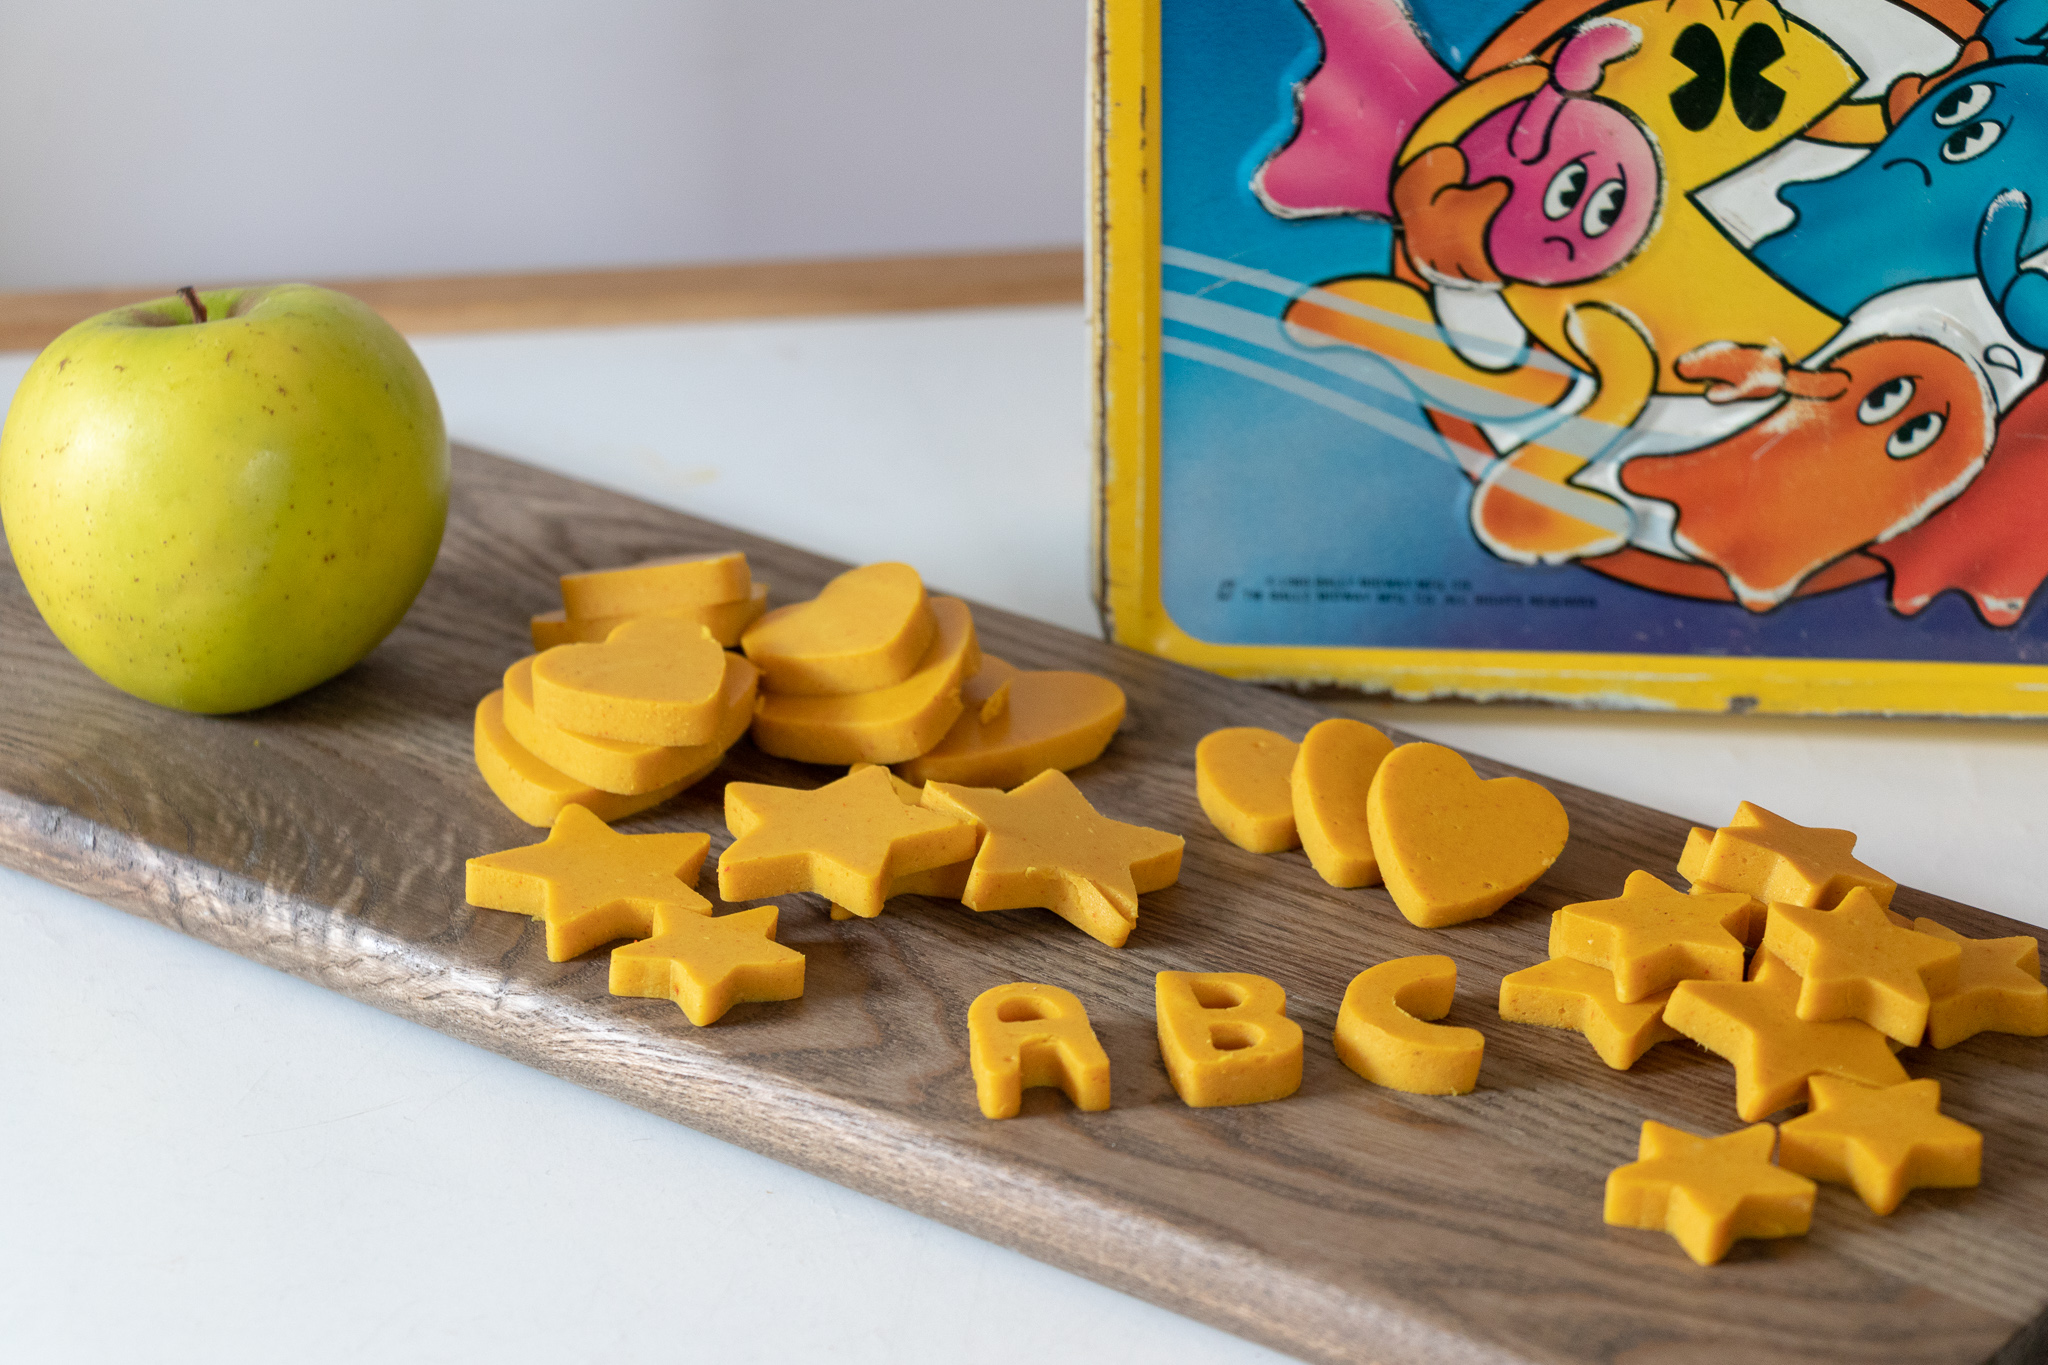 These cheddar cheese shape are the perfect back to school snack. The fun shapes are sure to be a hit, and making this cheese with coconut milk makes it a great alliterative for those with nut allergies.